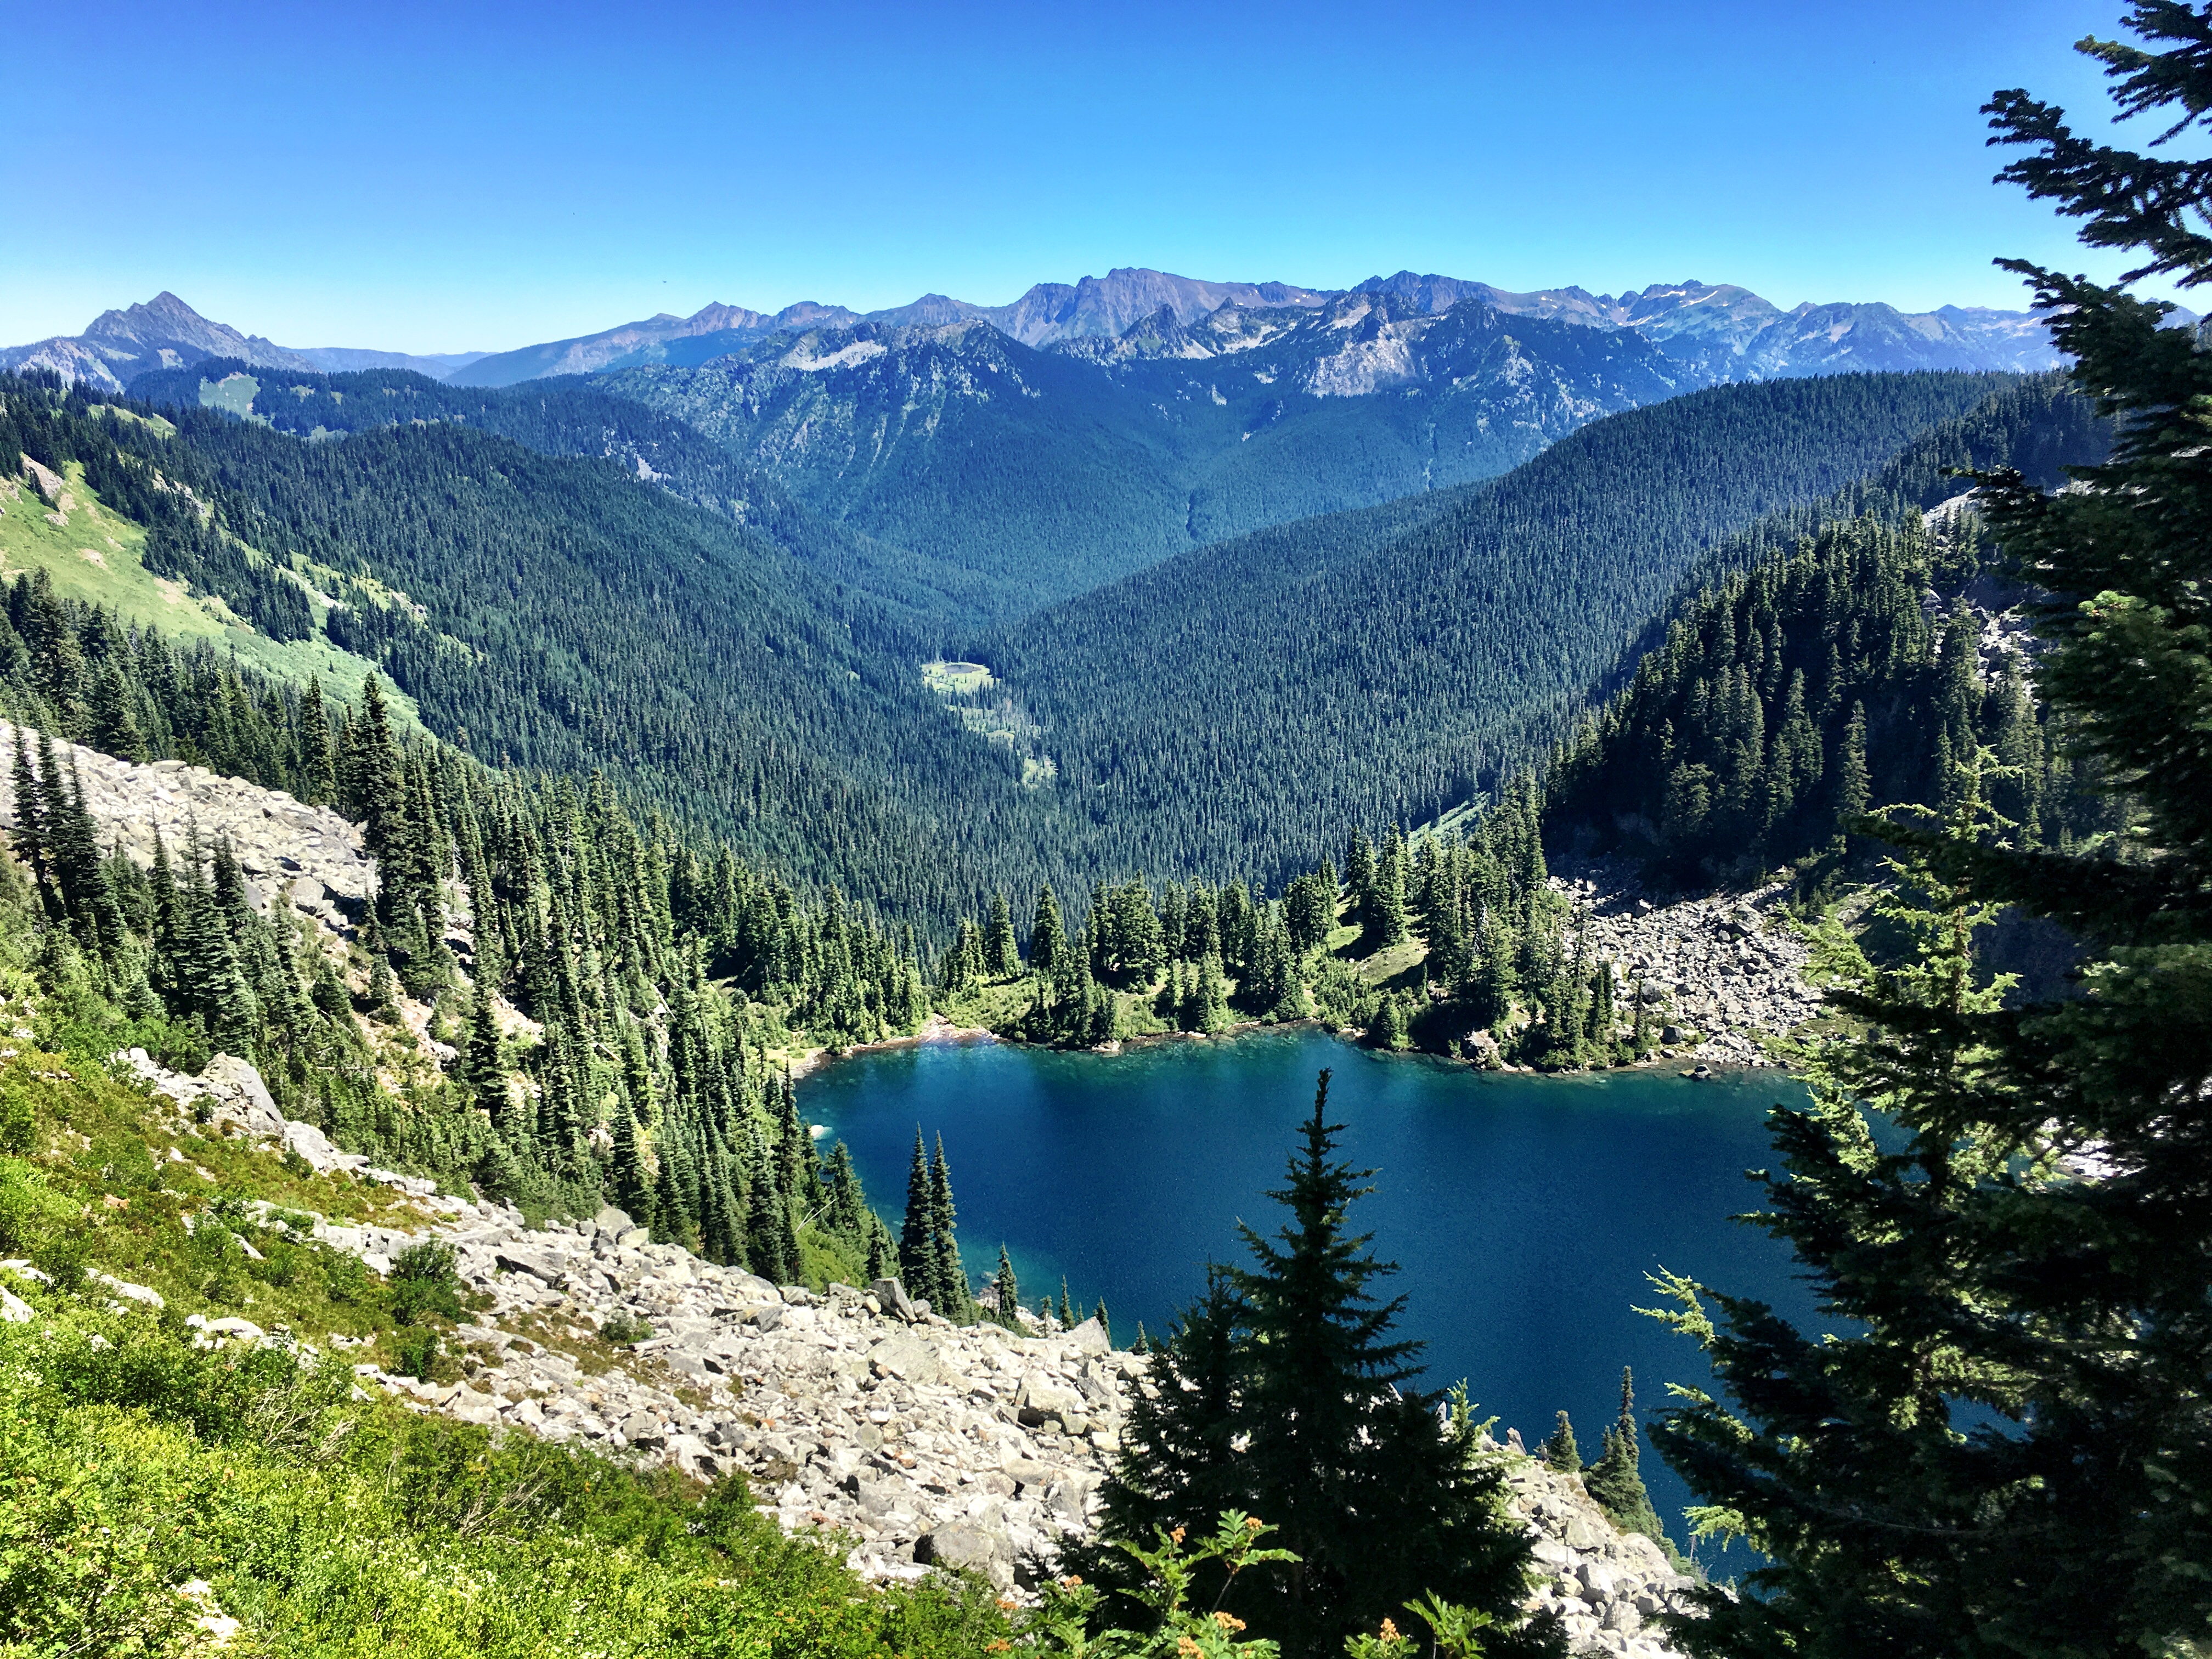 Surprise Lake (again) on Stevens Pass to Snoqualmie Pass adventure